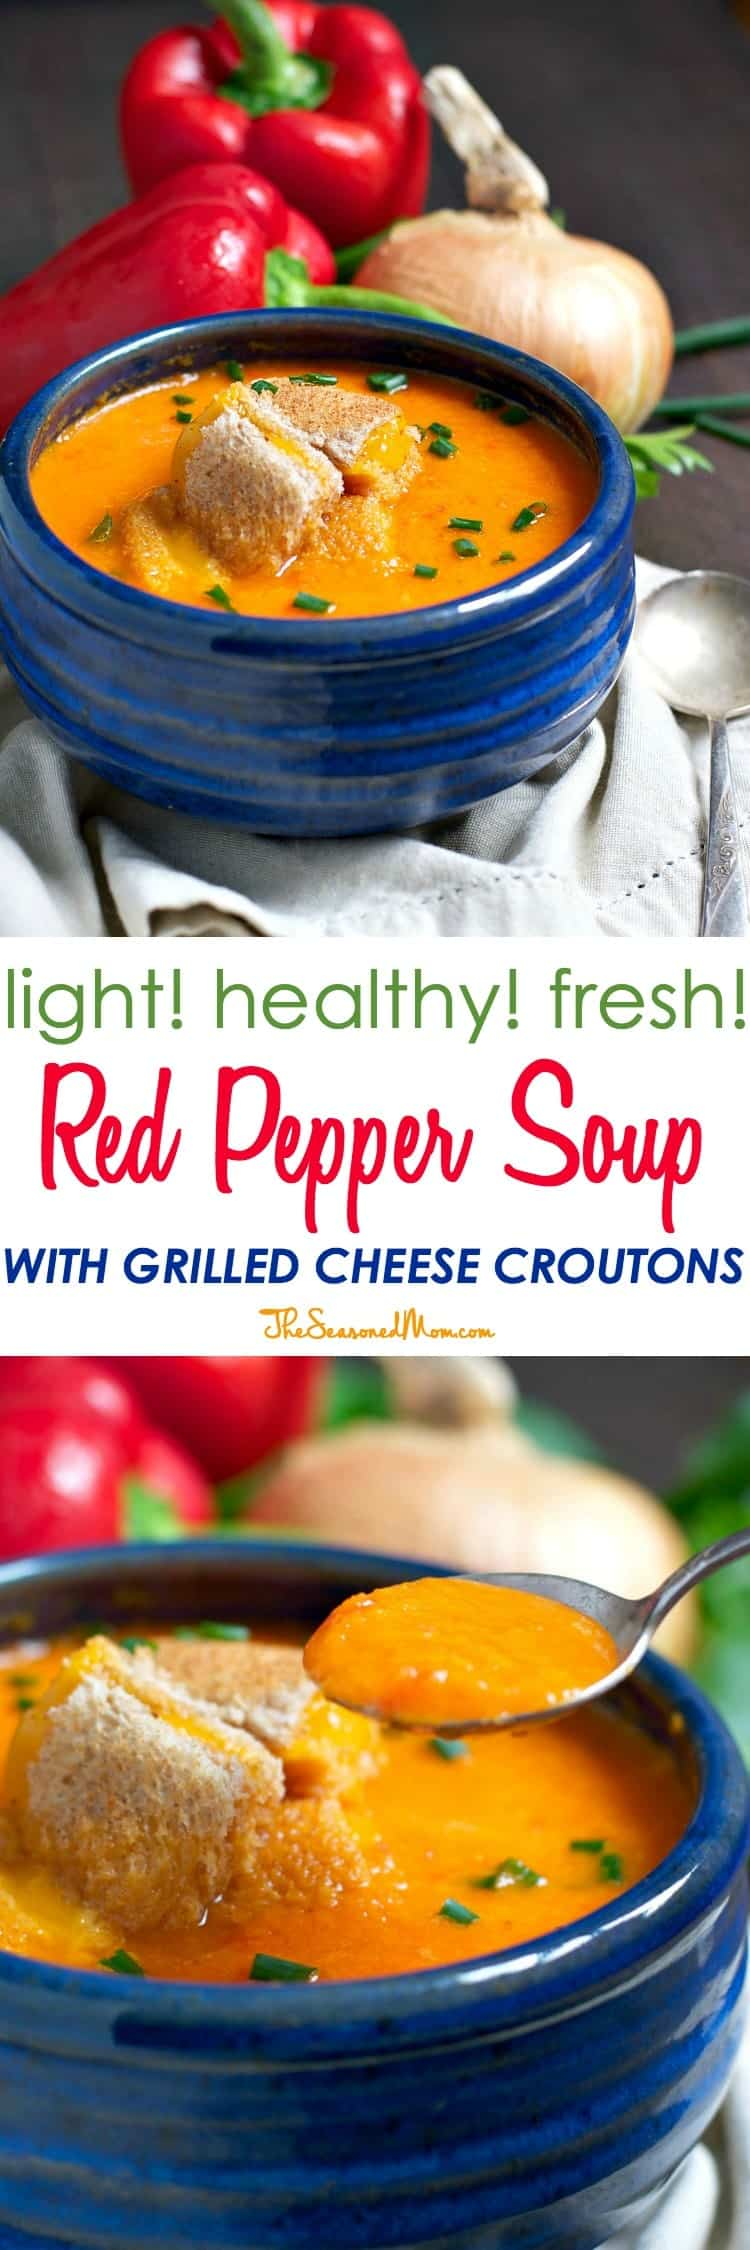 ... Soup with Grilled Cheese Croutons is an easy and healthy vegetarian